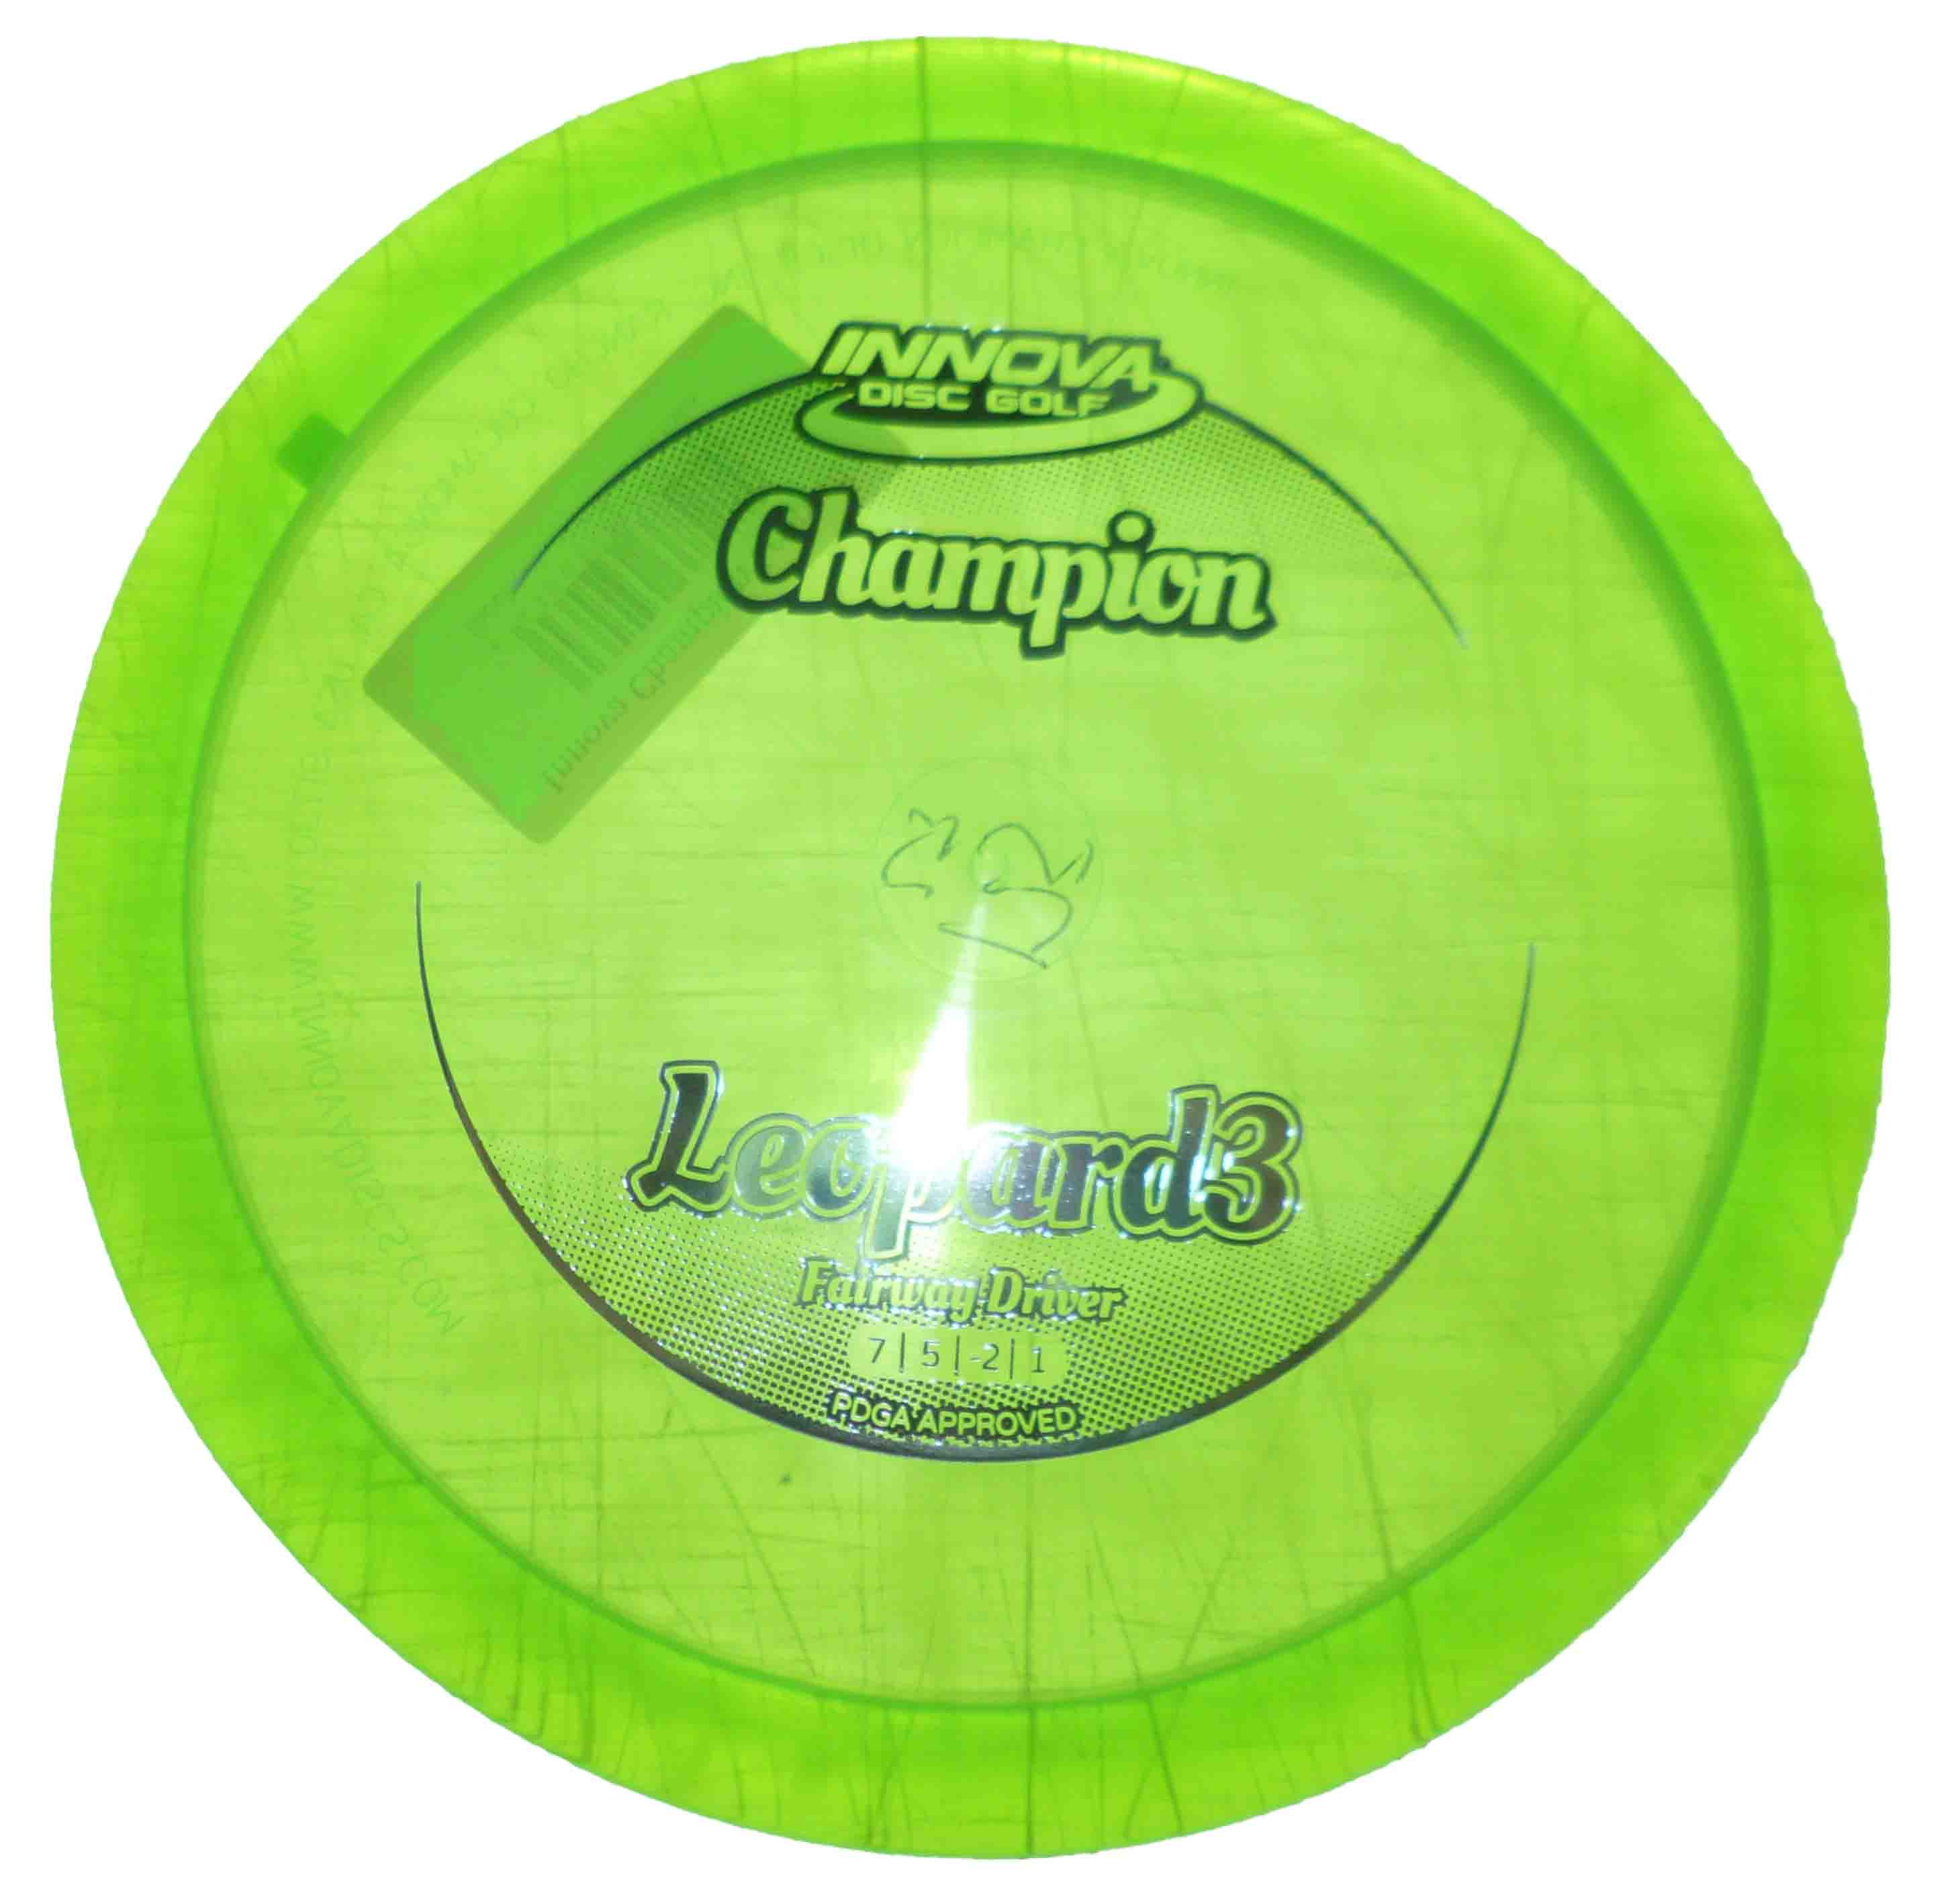 Leopard 3 Champion green